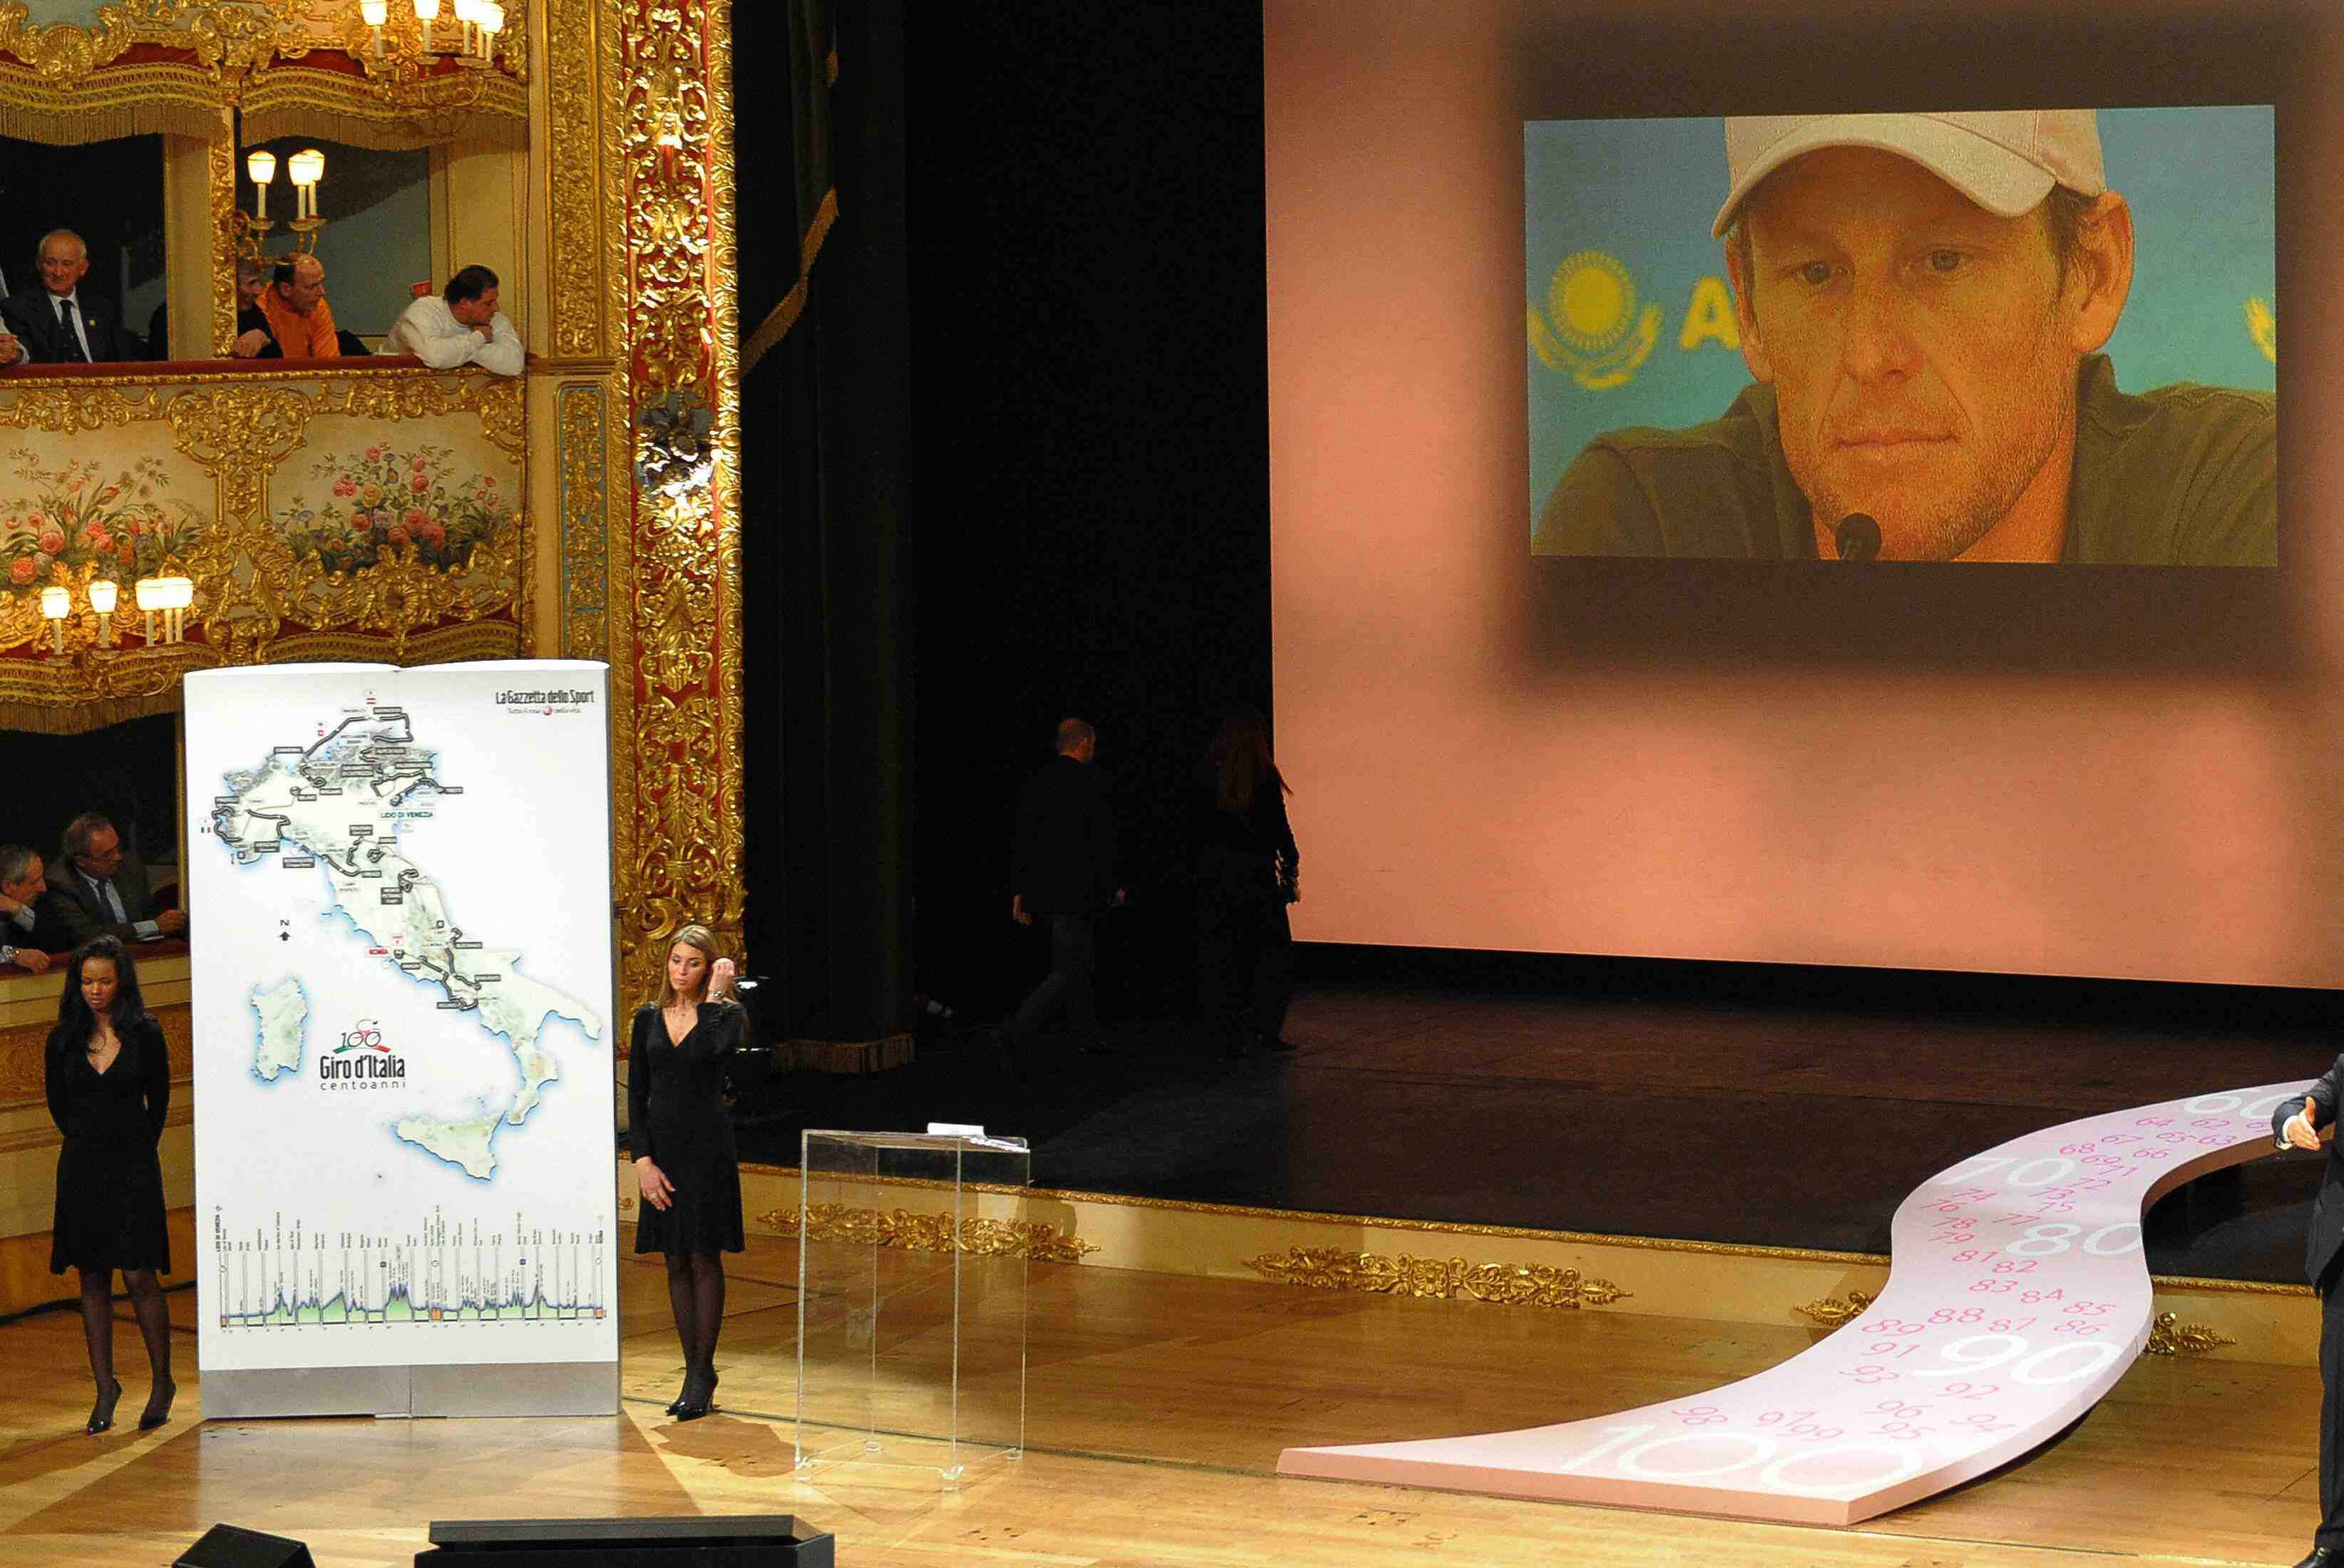 A video showing an interview of Lance Armstrong/Wizard of Oz is presented during the 100th Giro d'Italia on December 13, 2008 at the La Fenice Theatre in Venice.